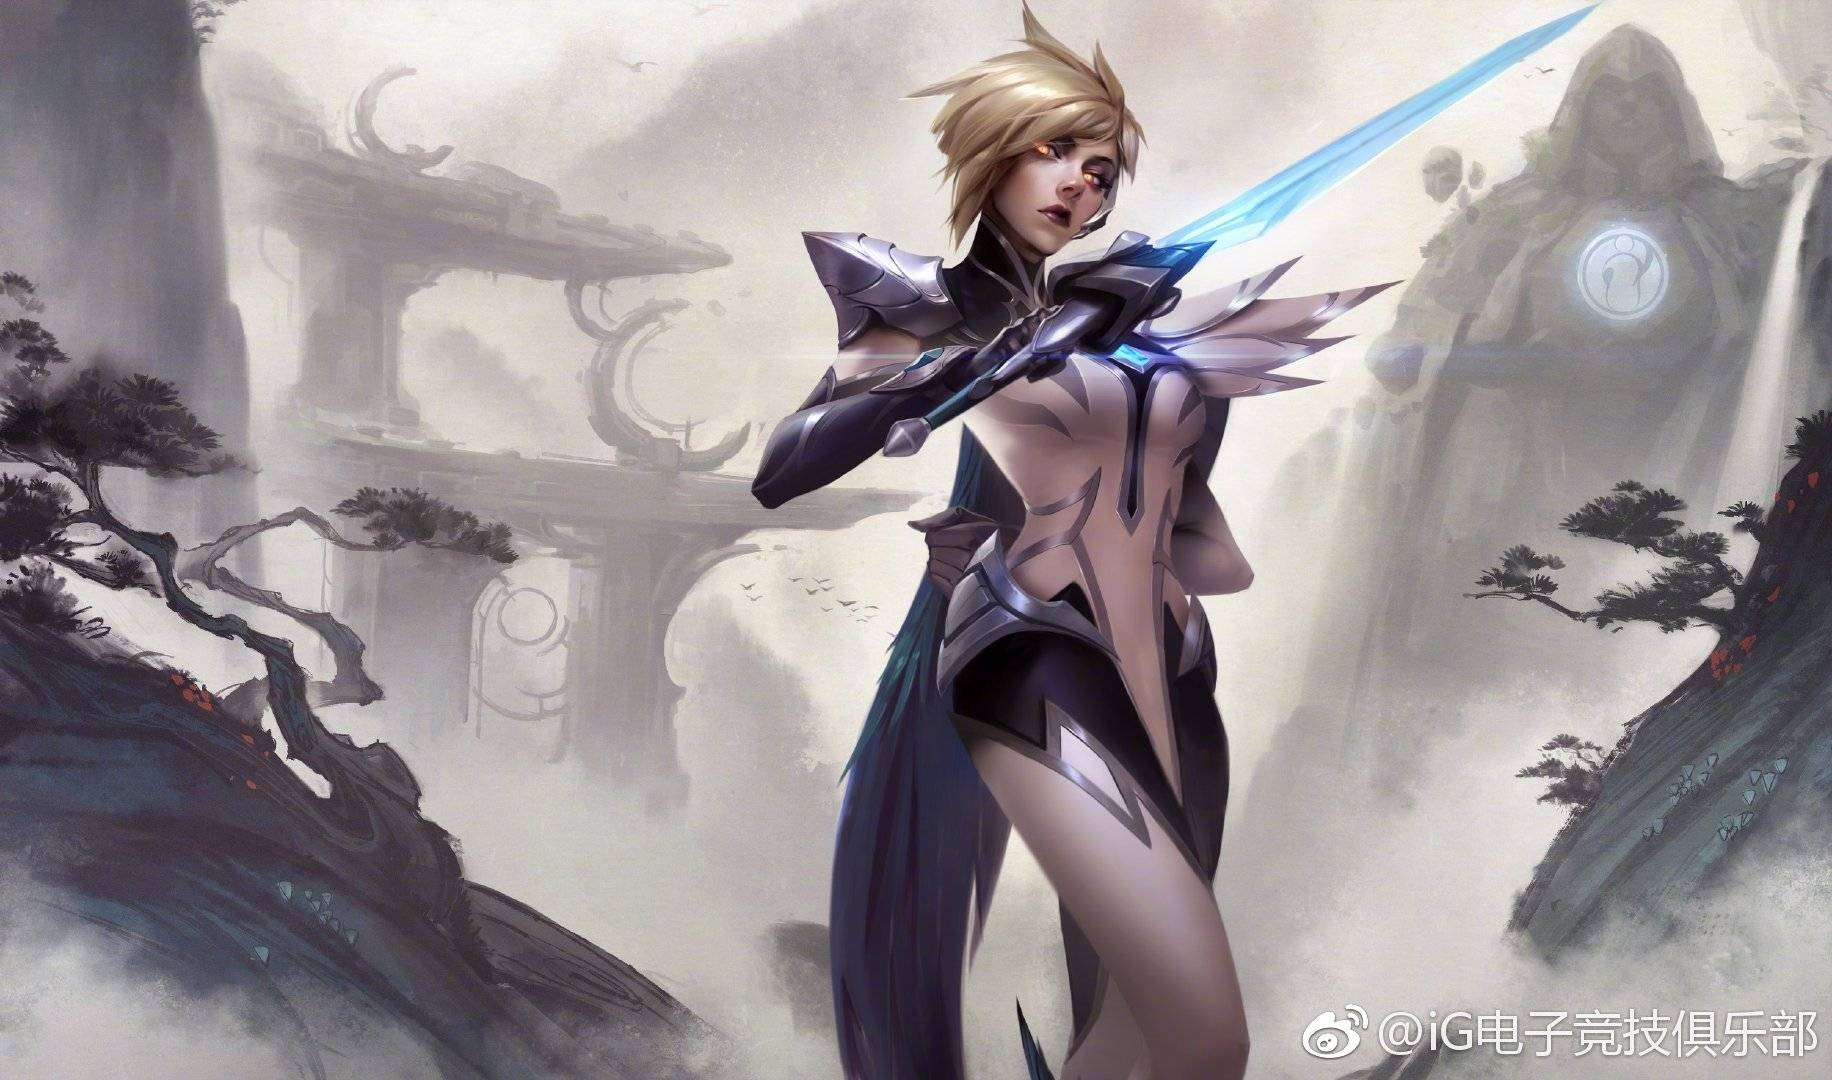 General 1832x1080 League of Legends Fiora (League of Legends) fantasy girl PC gaming